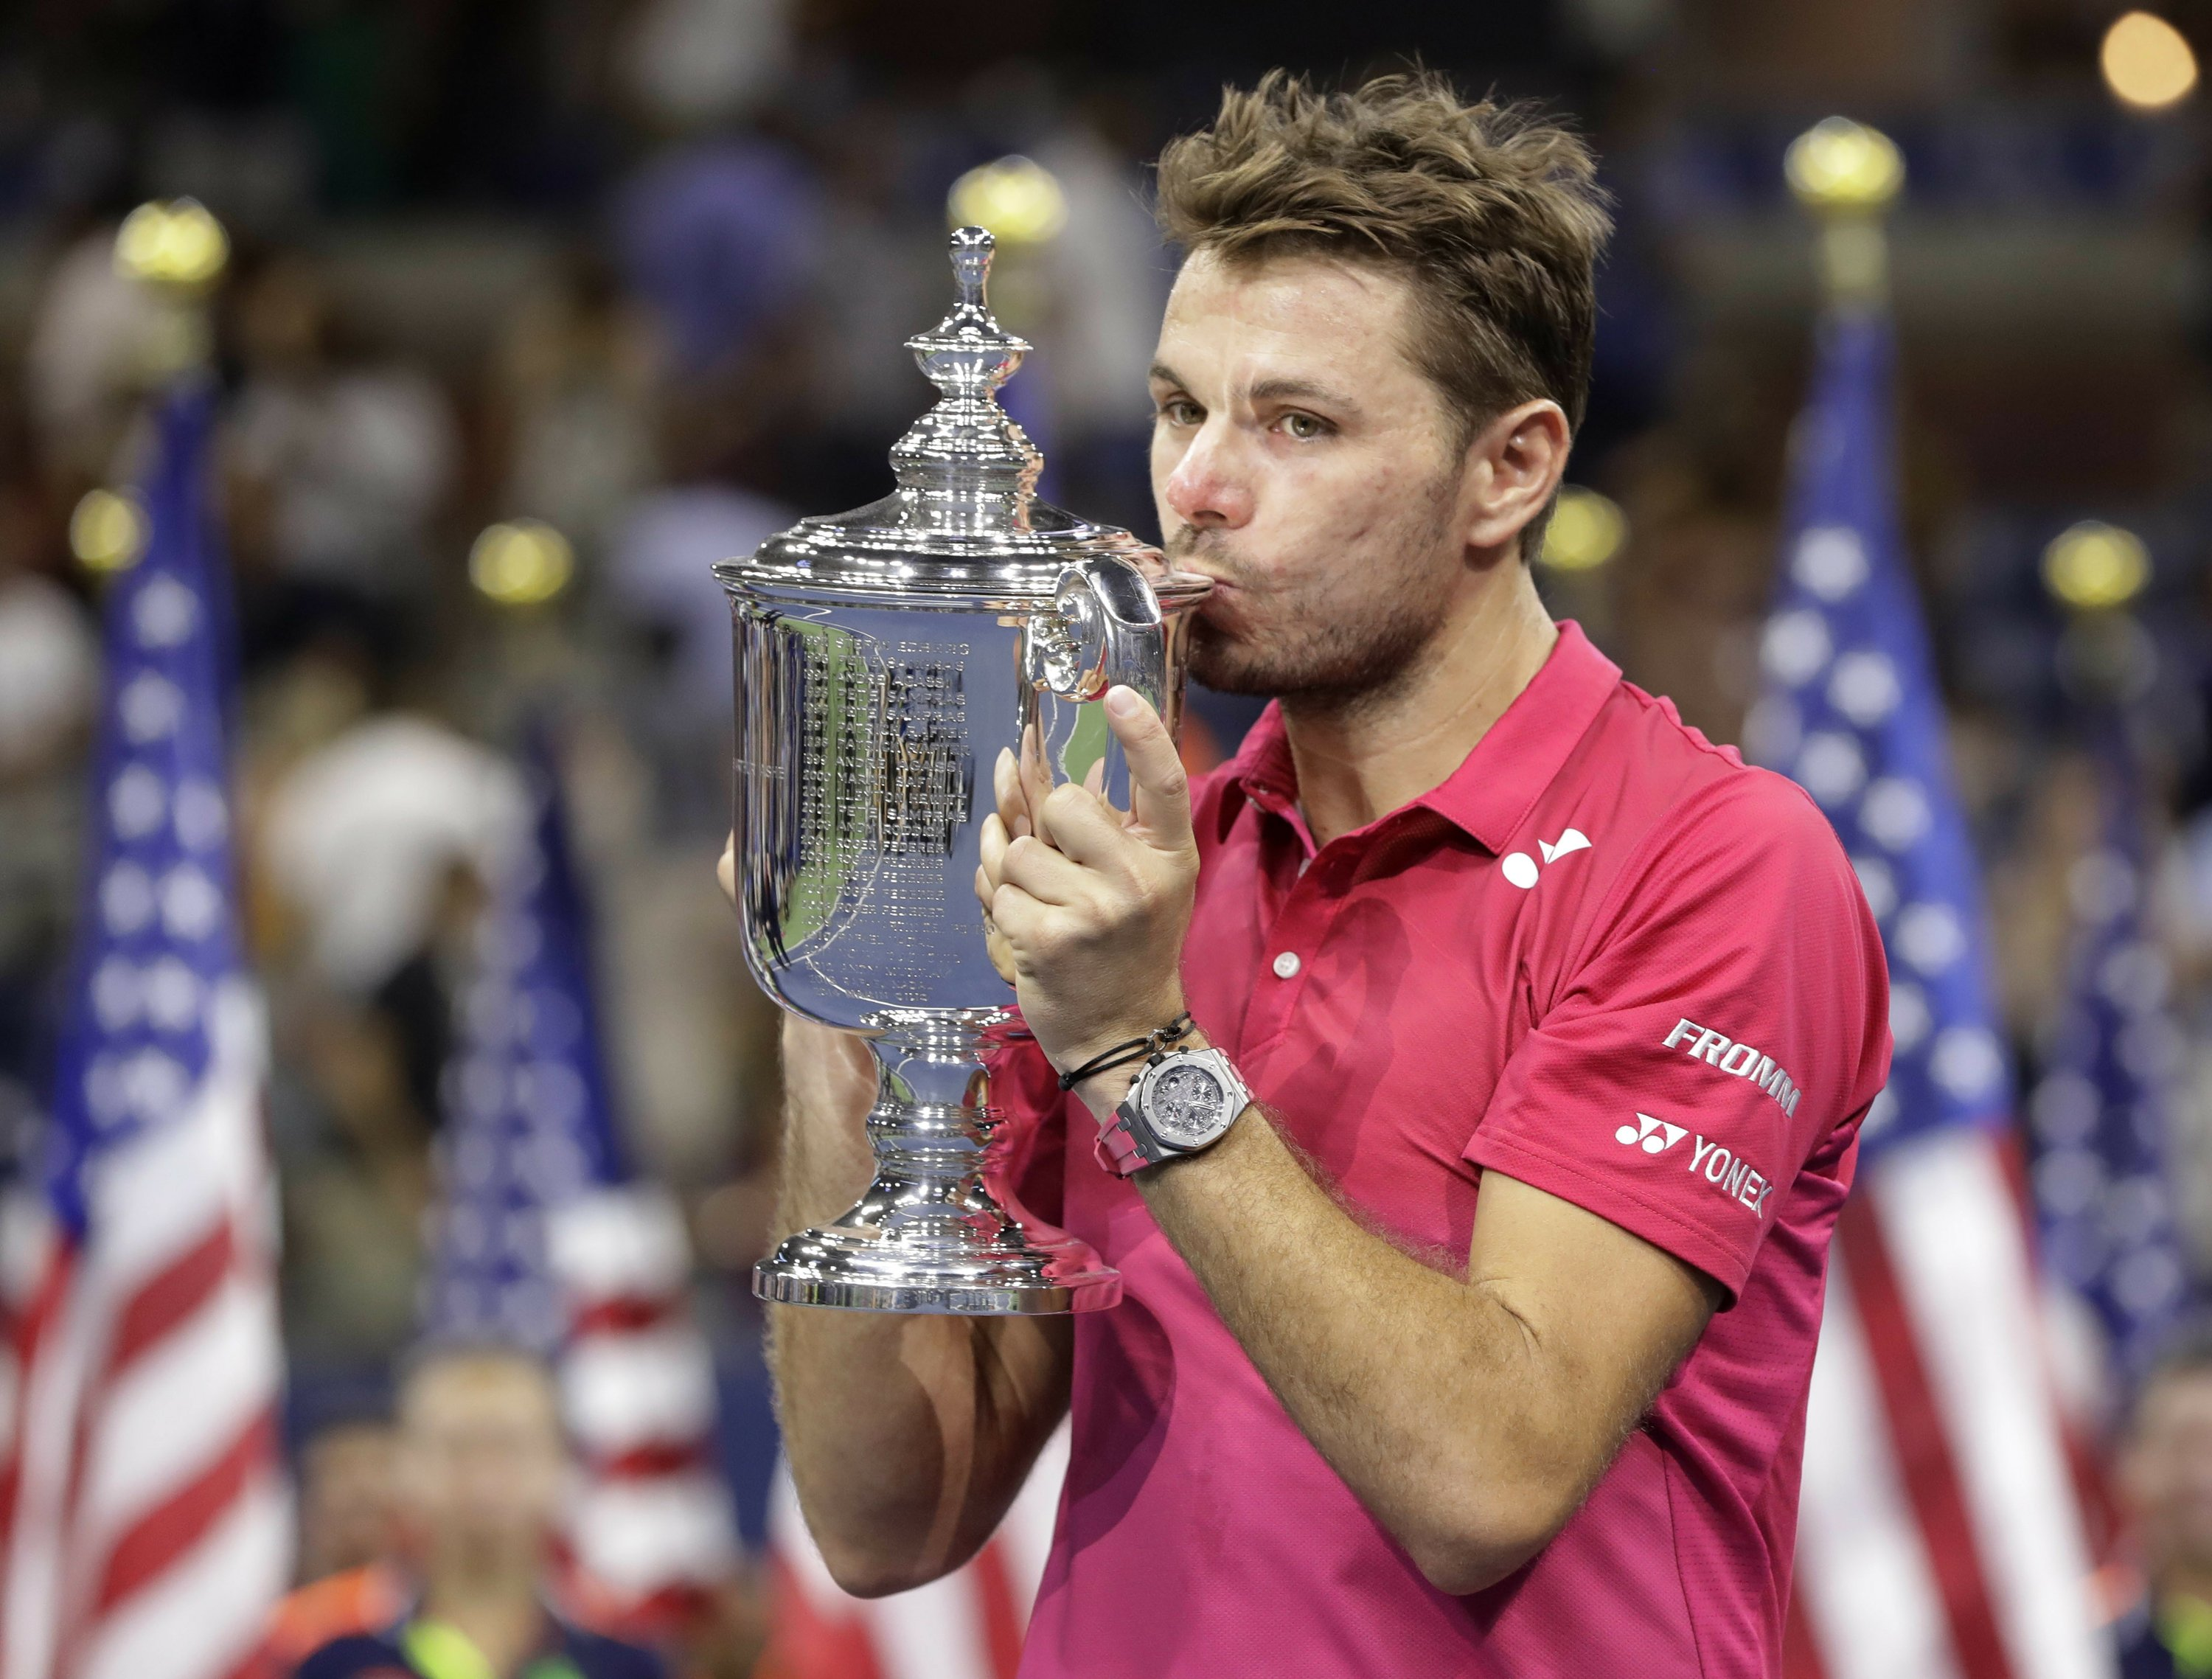 The Latest: US Open champ Wawrinka notes 9/11 in victory